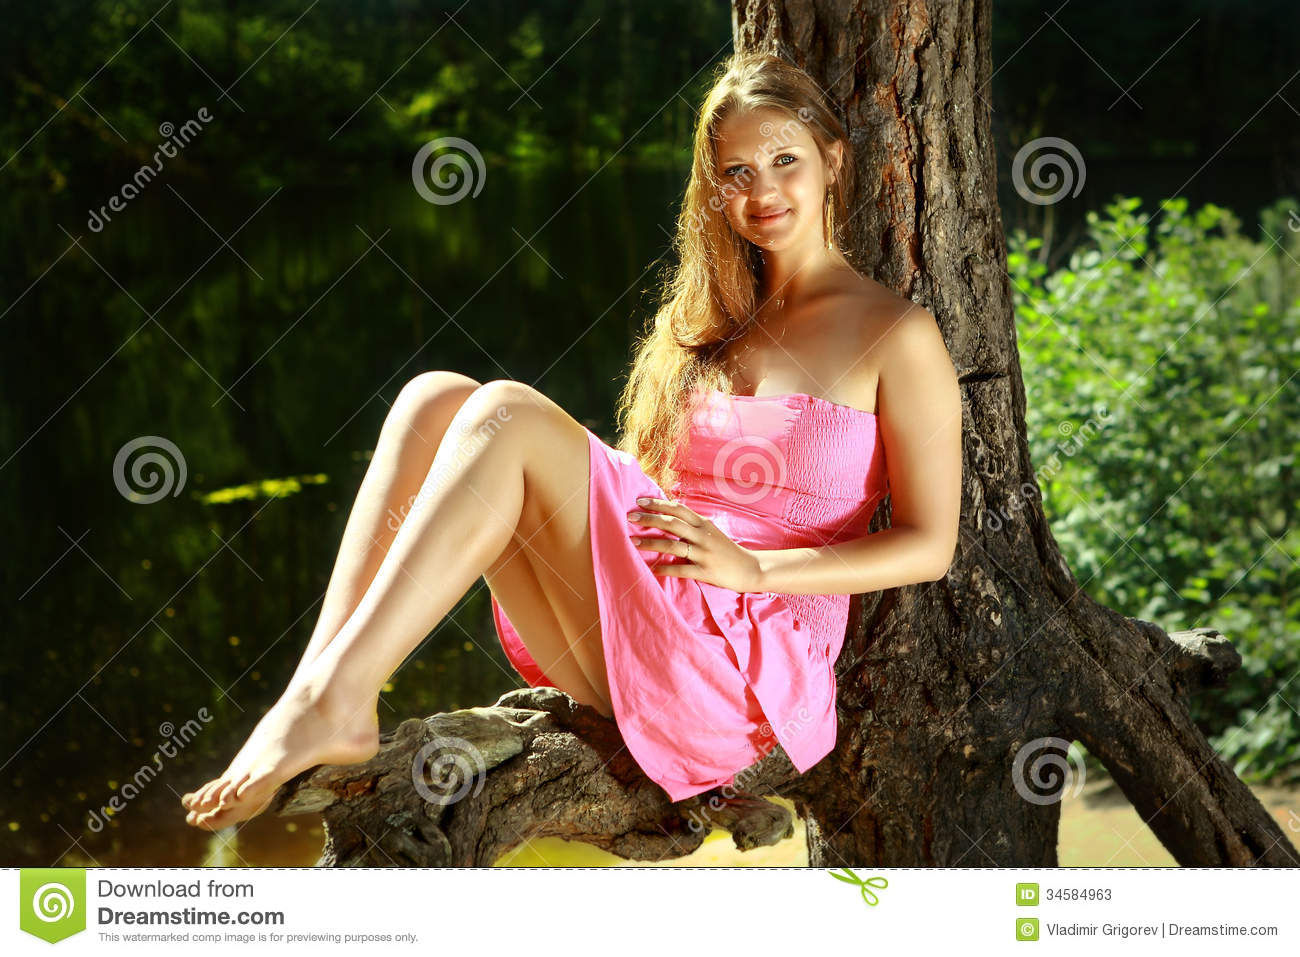 , 16 years old, in a pink dress, with long hair and bare feet